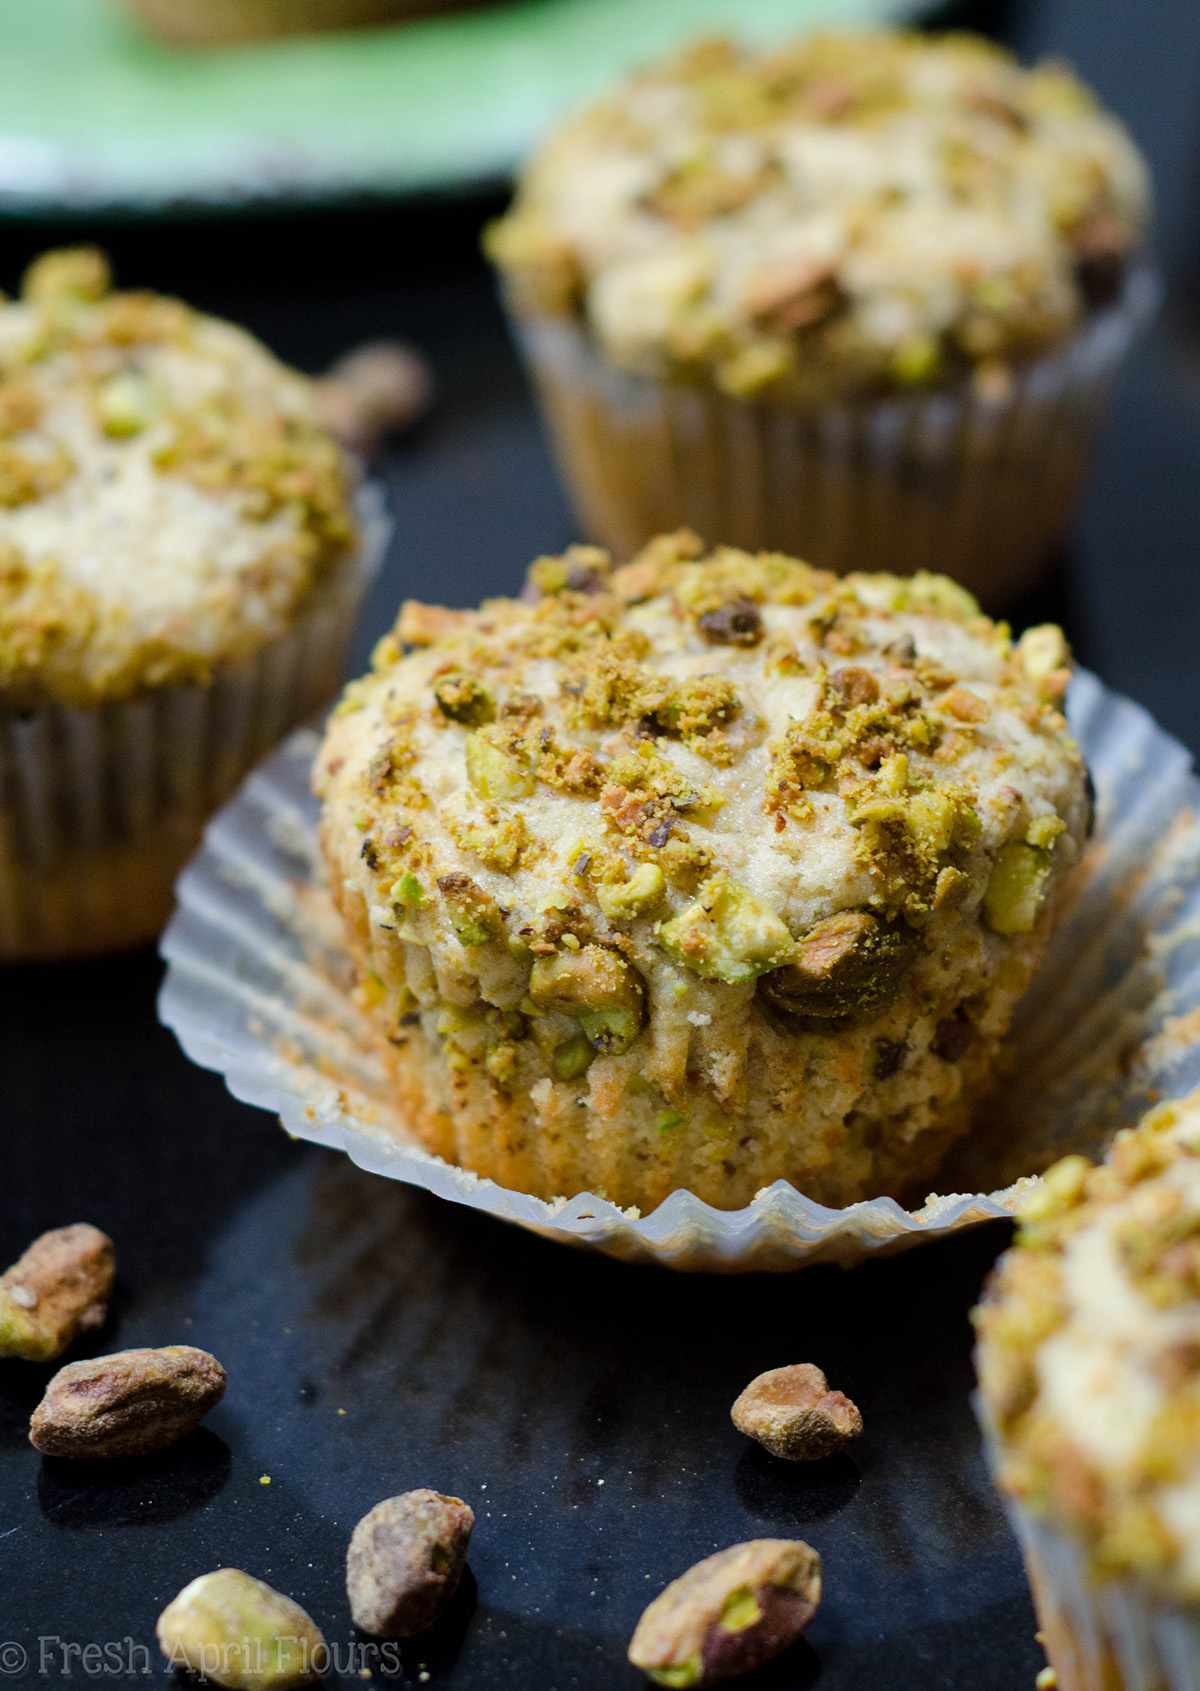 pistachio muffin unwrapped and sitting in its wrapper